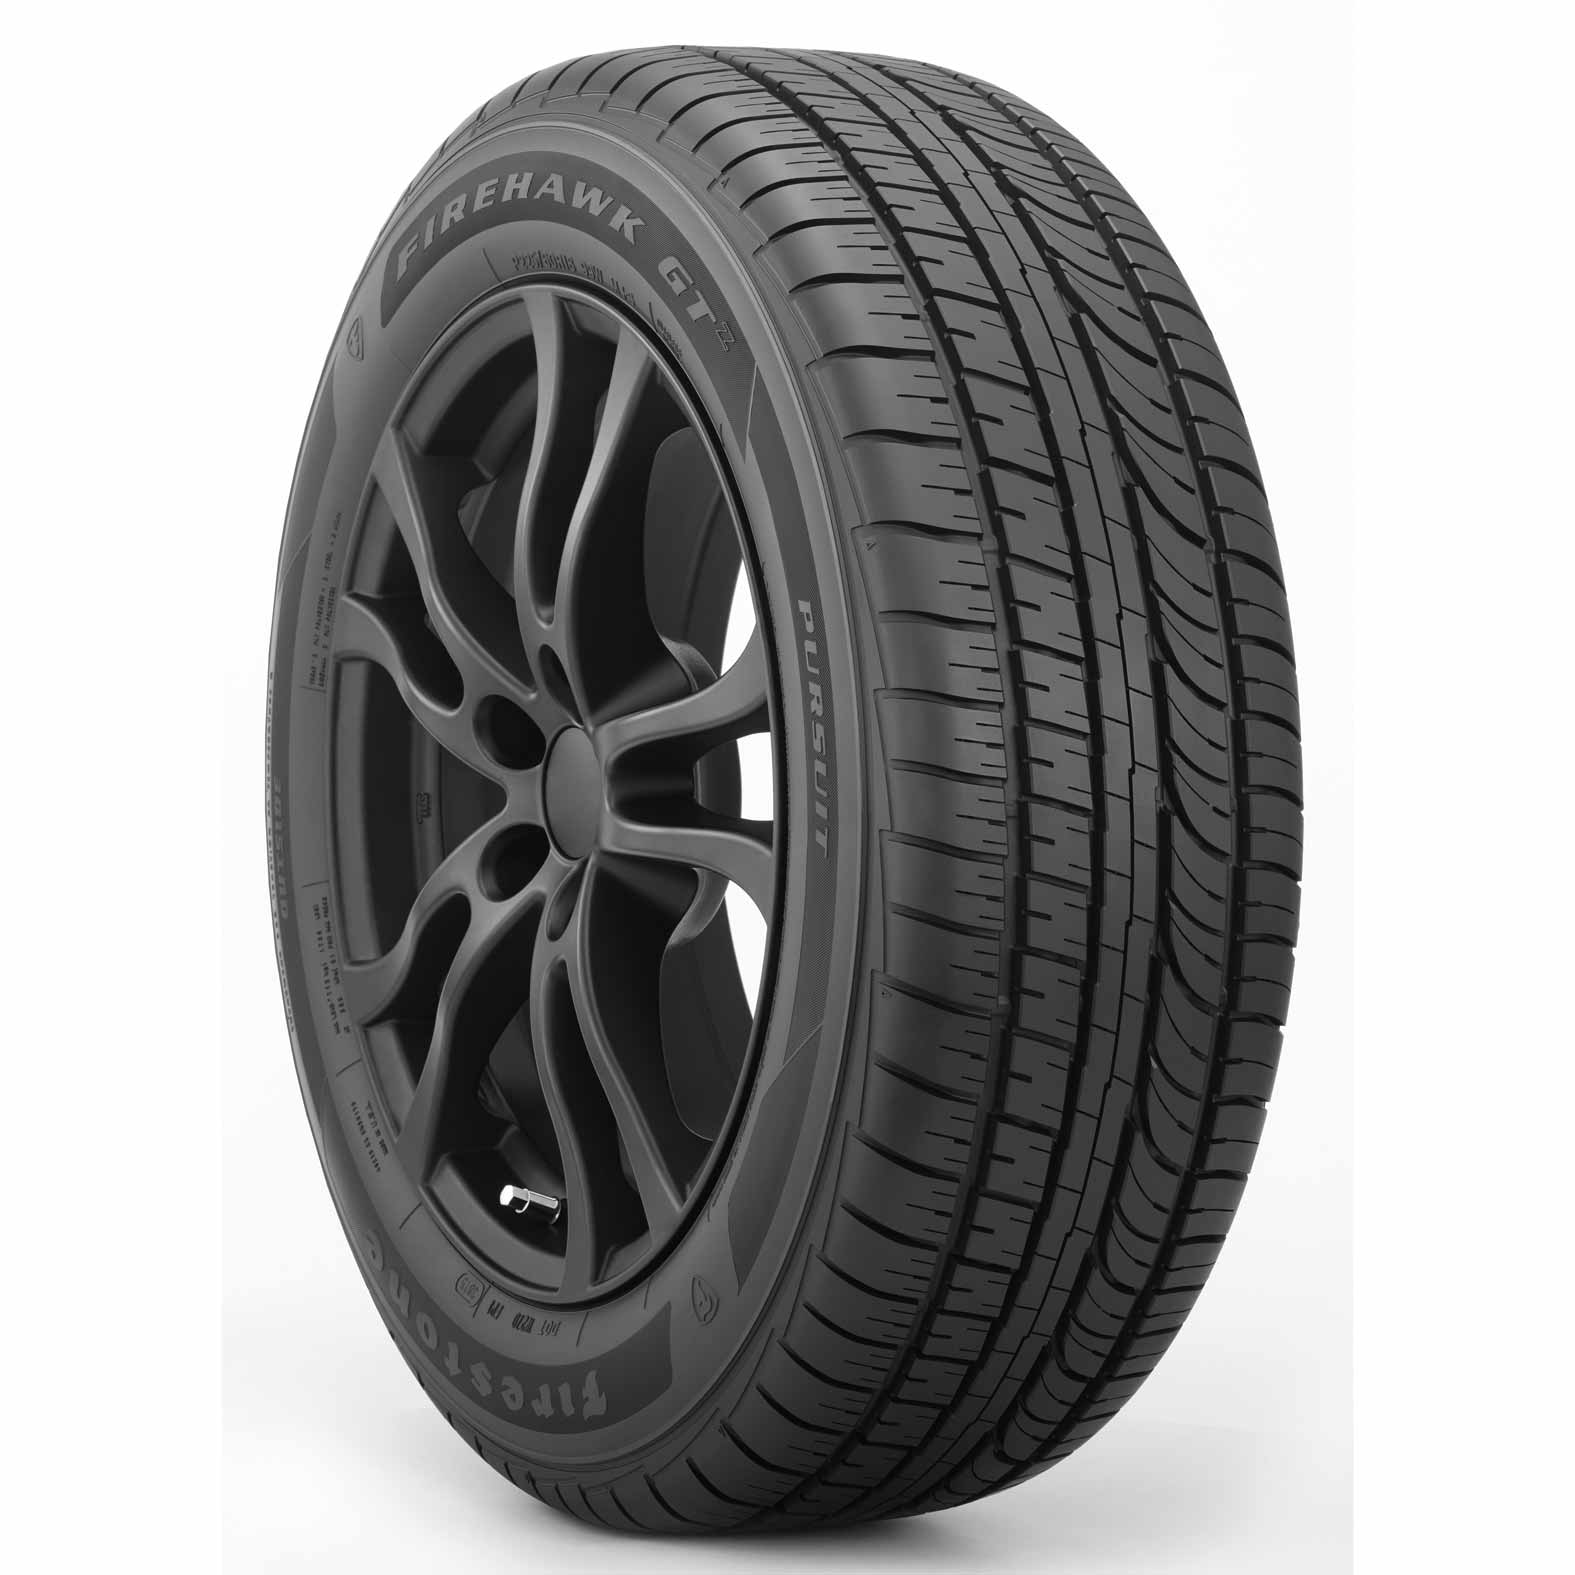 Firestone Firehawk GT Pursuit tire - angle